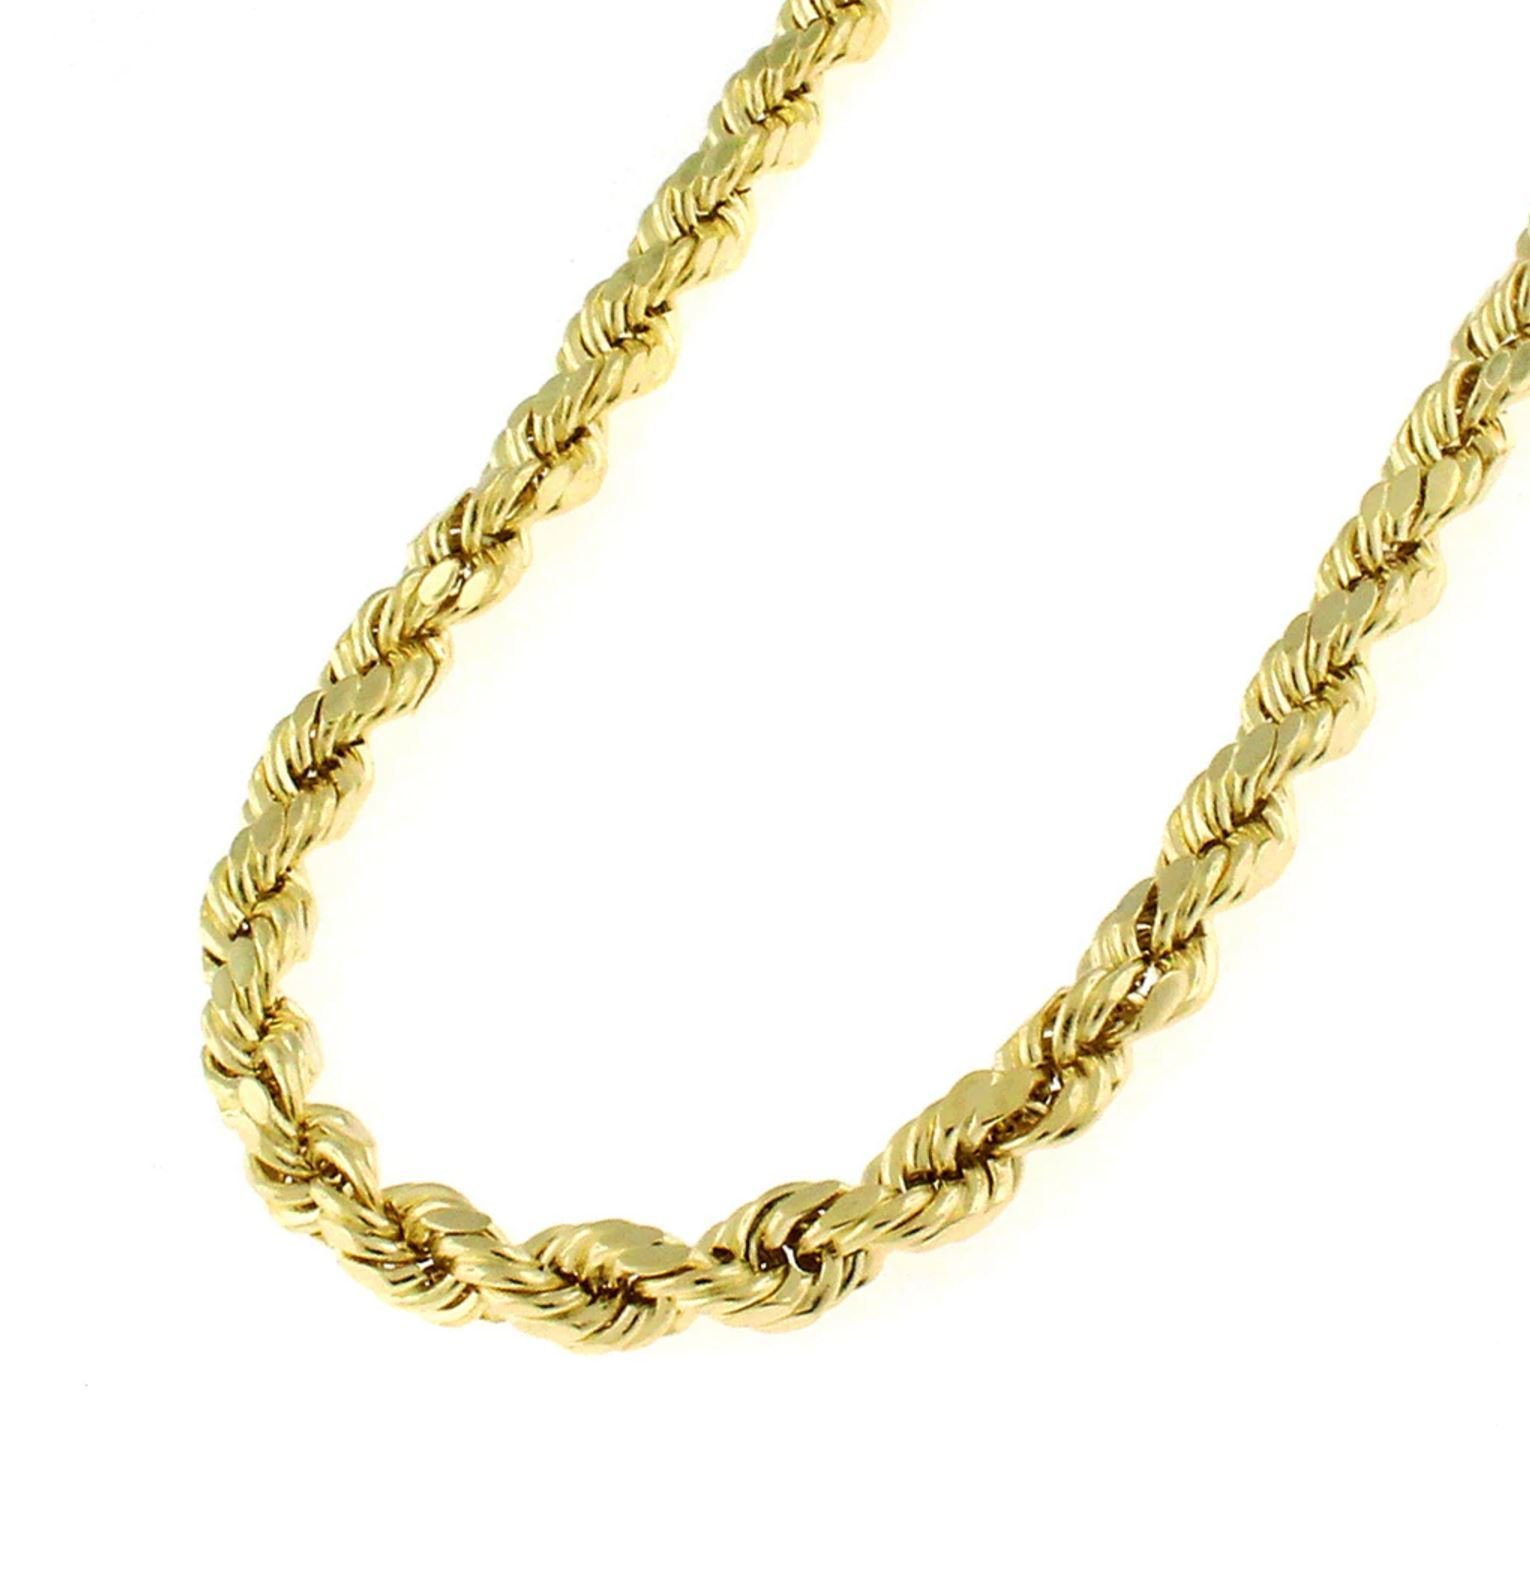 14K Solid Yellow Gold 1.5mm, 2mm, or 3.2mm Diamond Cut Rope Chain Necklace Unisex Sizes 16''-30'' -Solid Gold Heavyweight (30, 3.2mm)